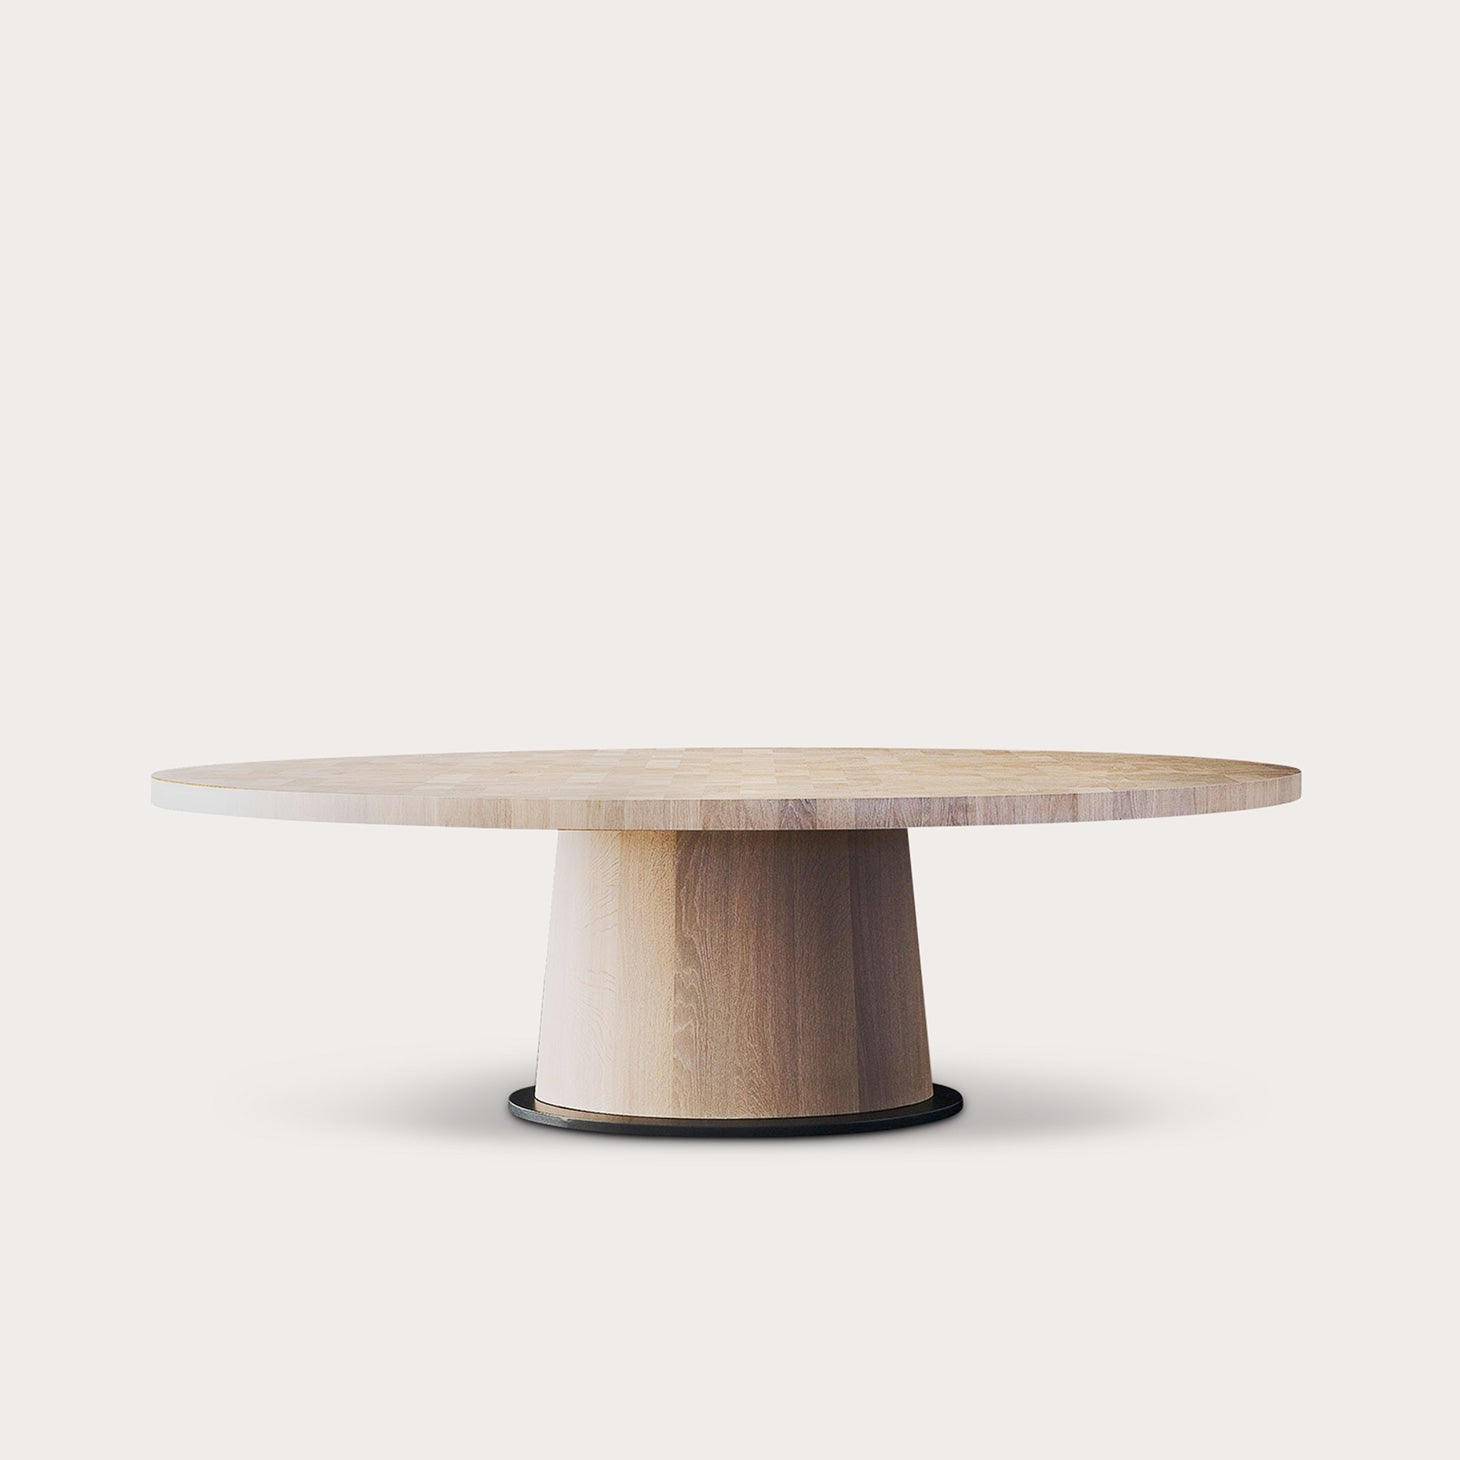 Kops Dining Table - Oval Tables Marlieke Van Rossum Designer Furniture Sku: 416-230-10188